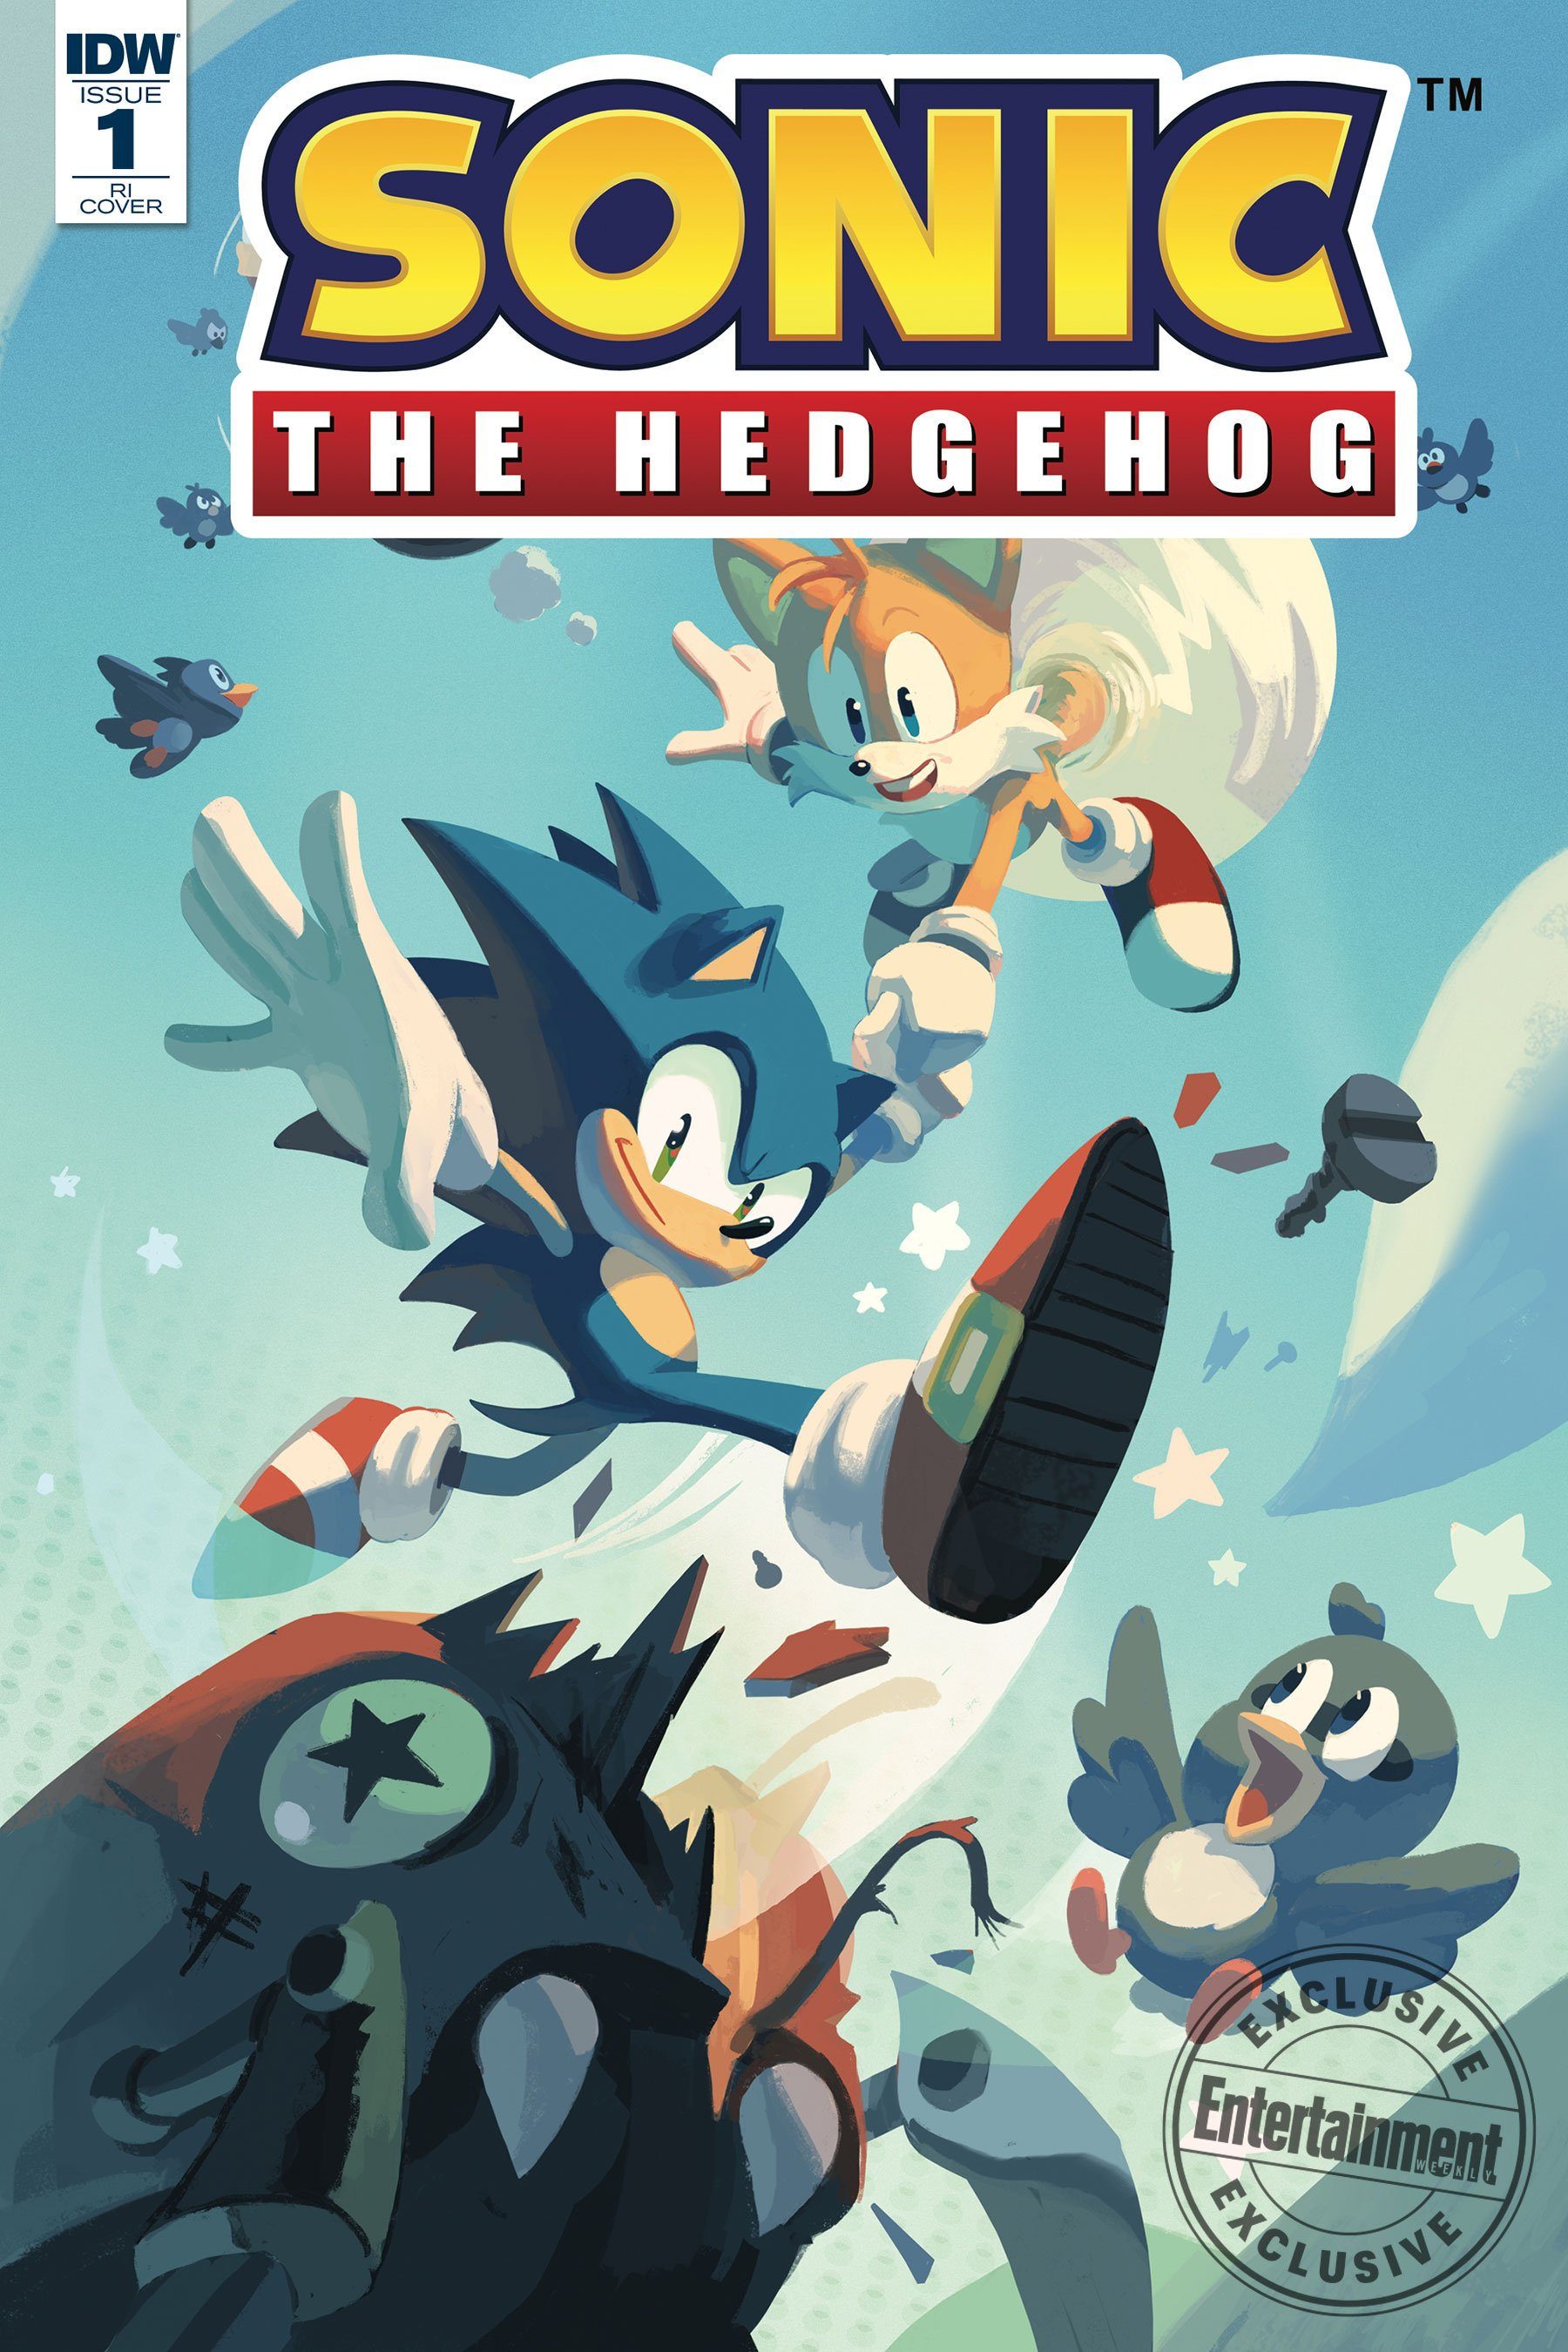 Sonic the Hedgehog 001 (April 2018) (RI-A cover)